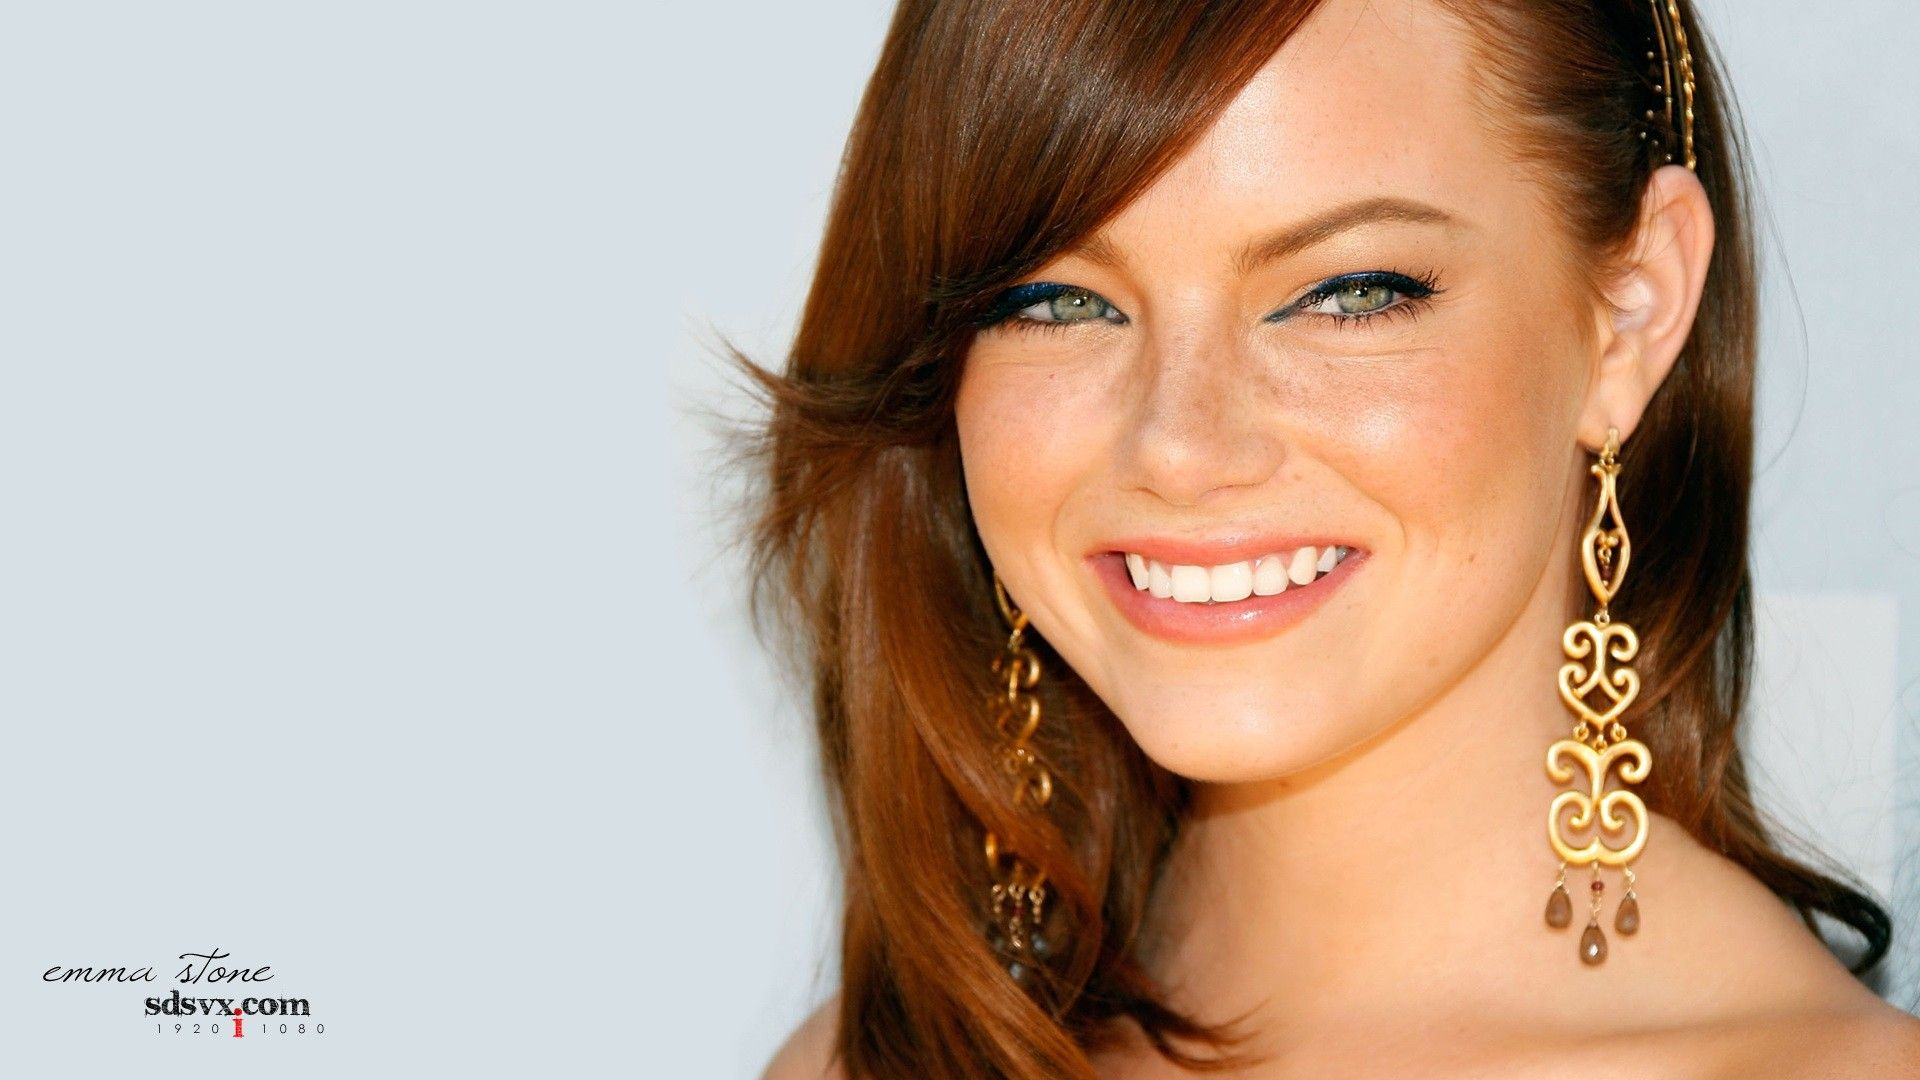 Emma Stone Hot Wallpapers